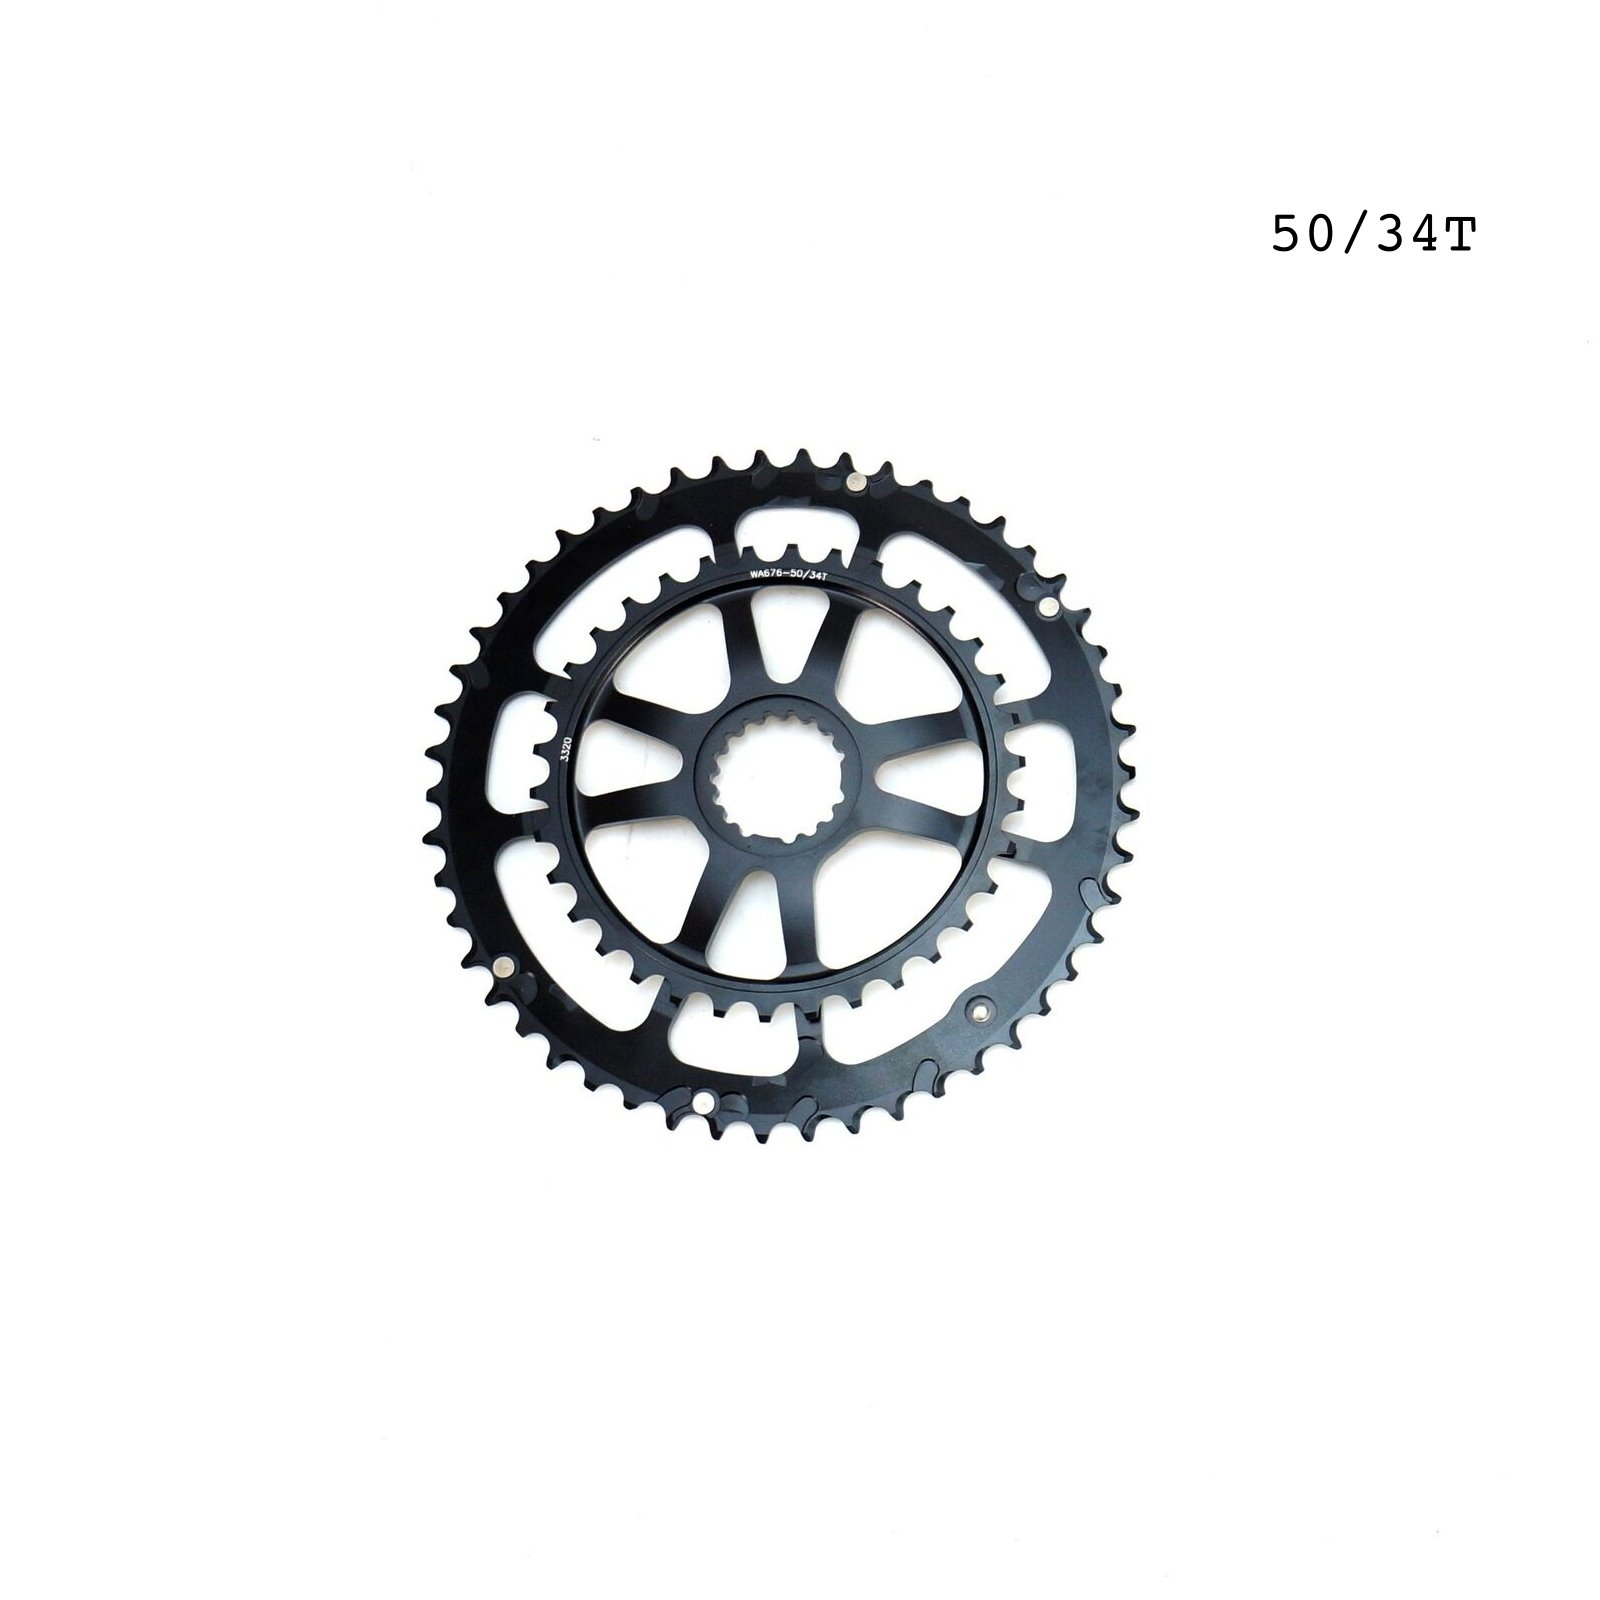 2020 Cannondale Hollowgram Si Road Bike Spidering Chainring  8 Arm 50//34T